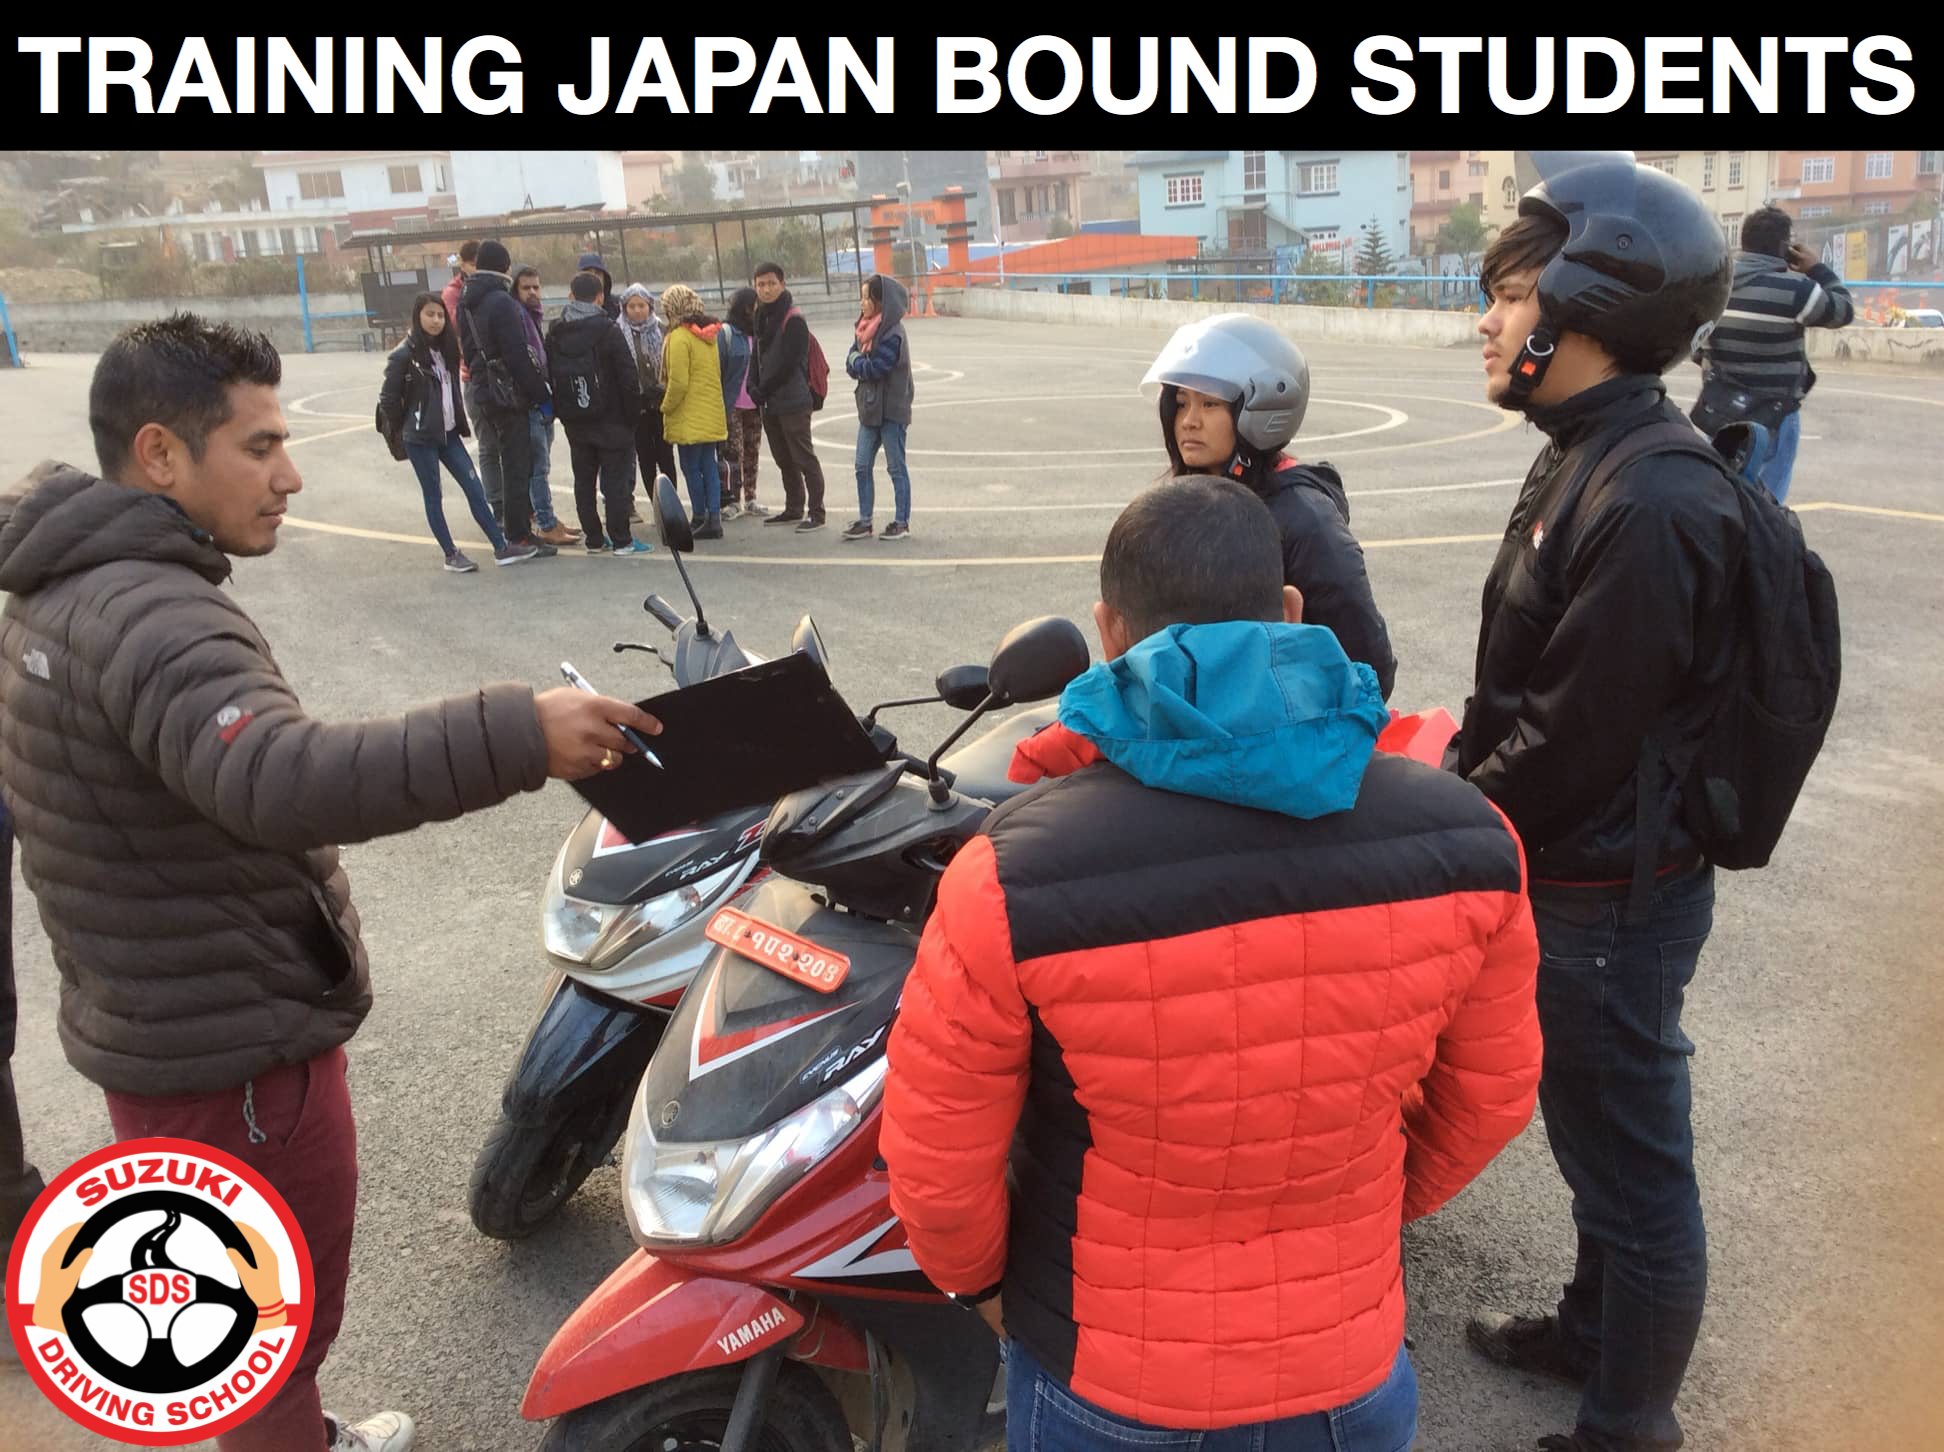 TRAINING JAPAN BOUND STUDENTS